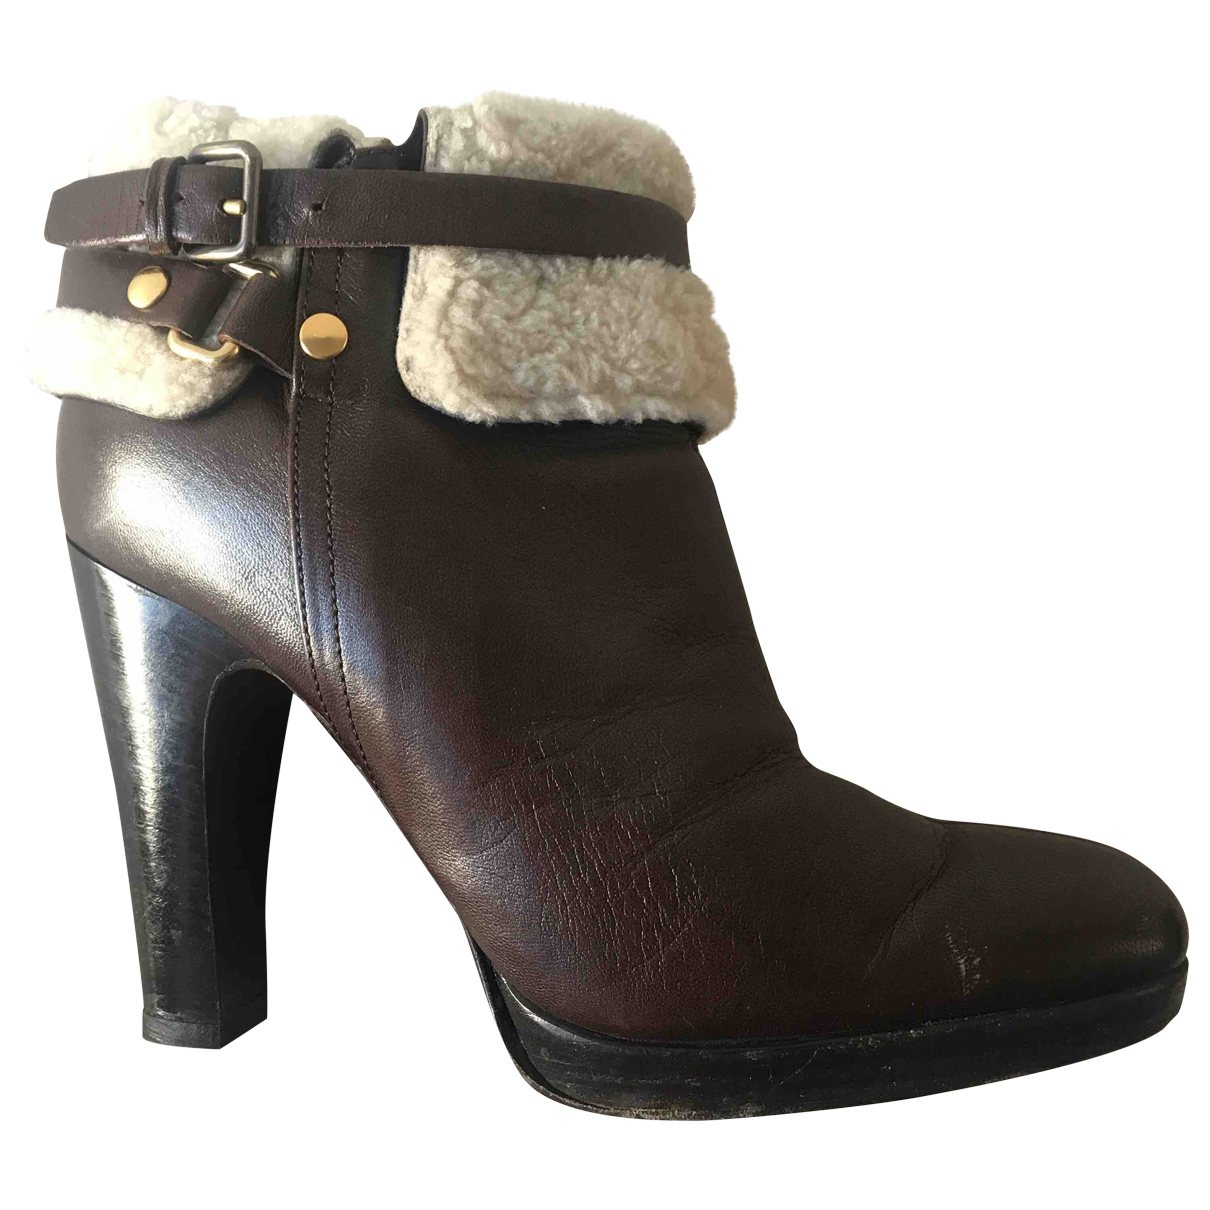 Miu Miu \N Brown Leather Ankle boots for Women 39.5 EU